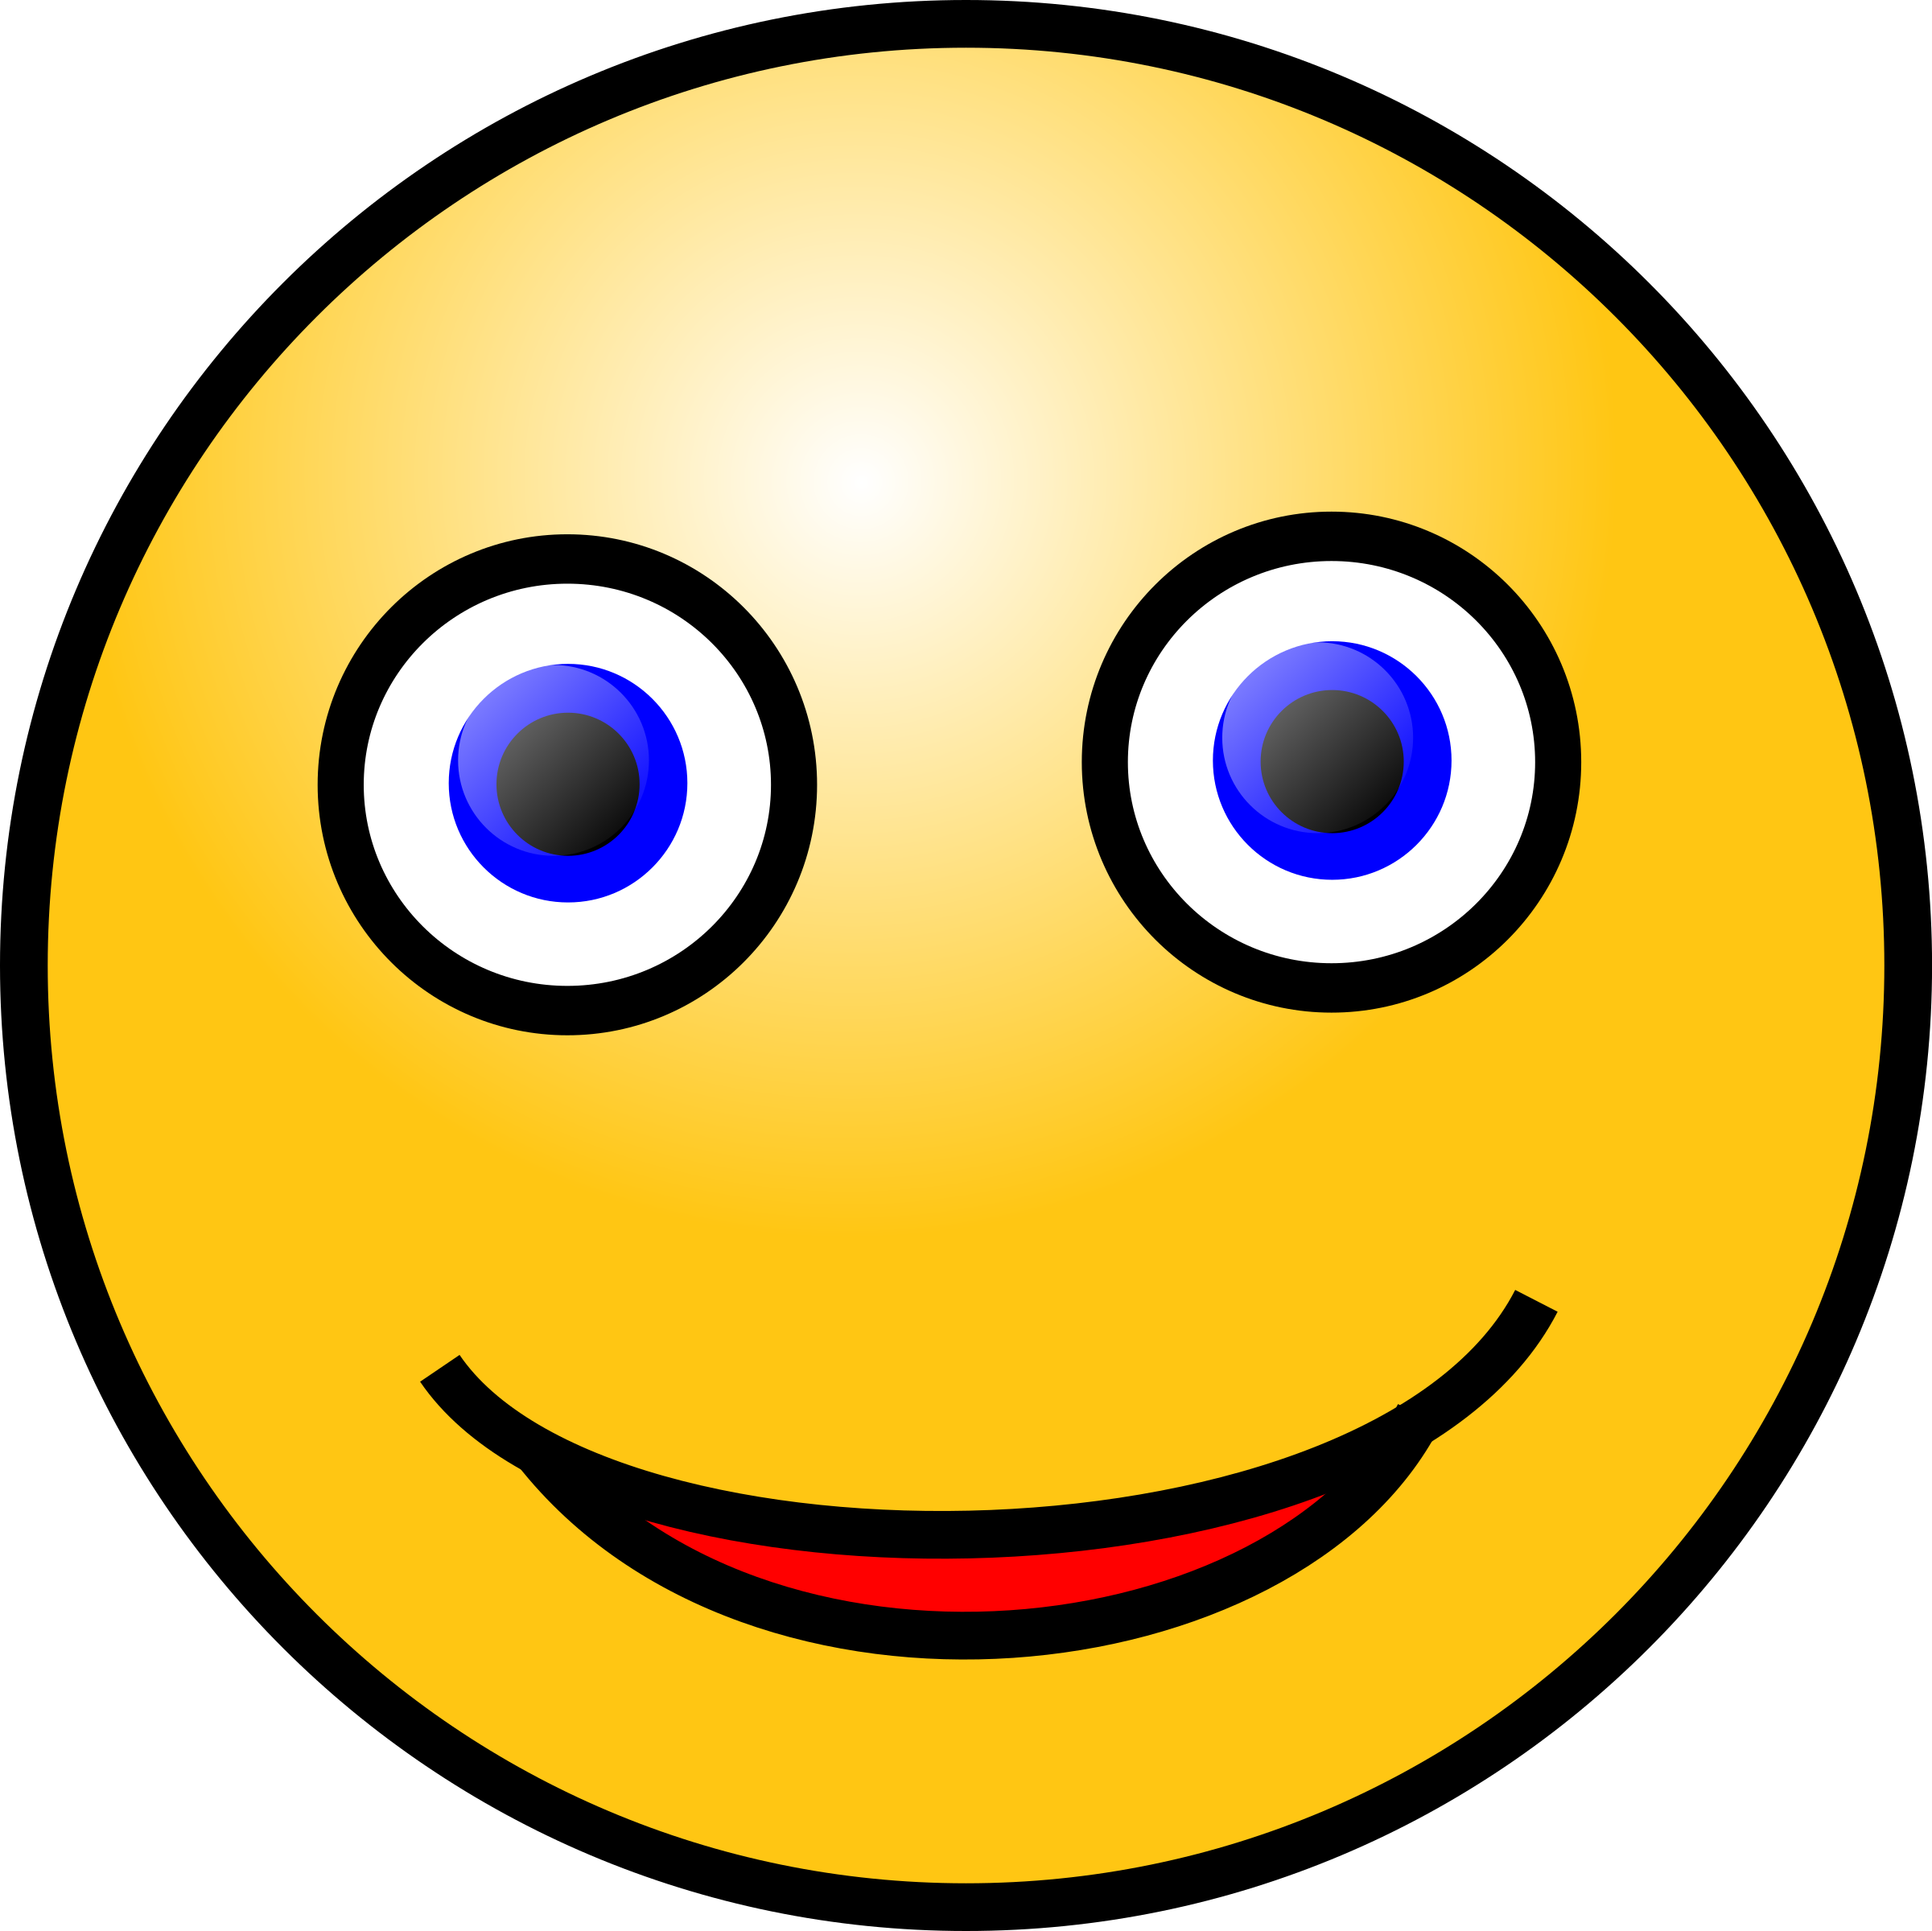 Clipart emoticons smiling big. Smiley face clip art emoticon